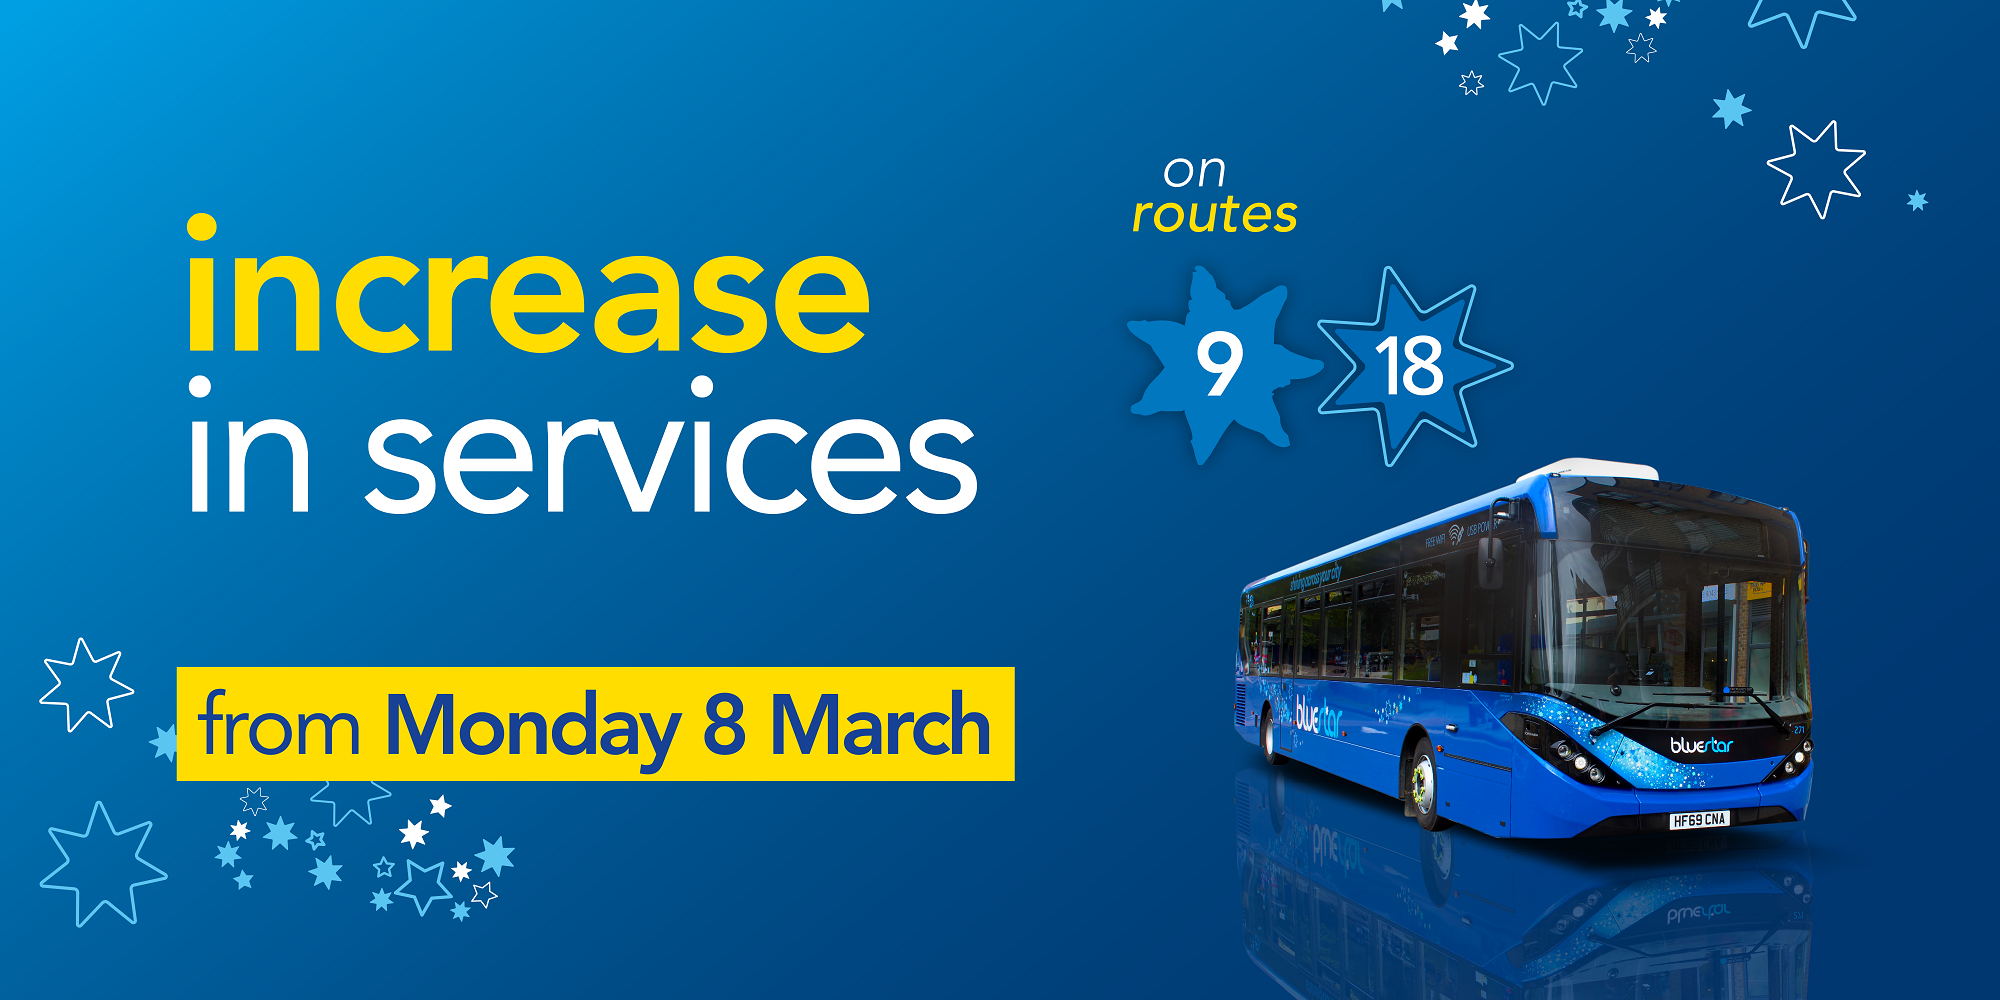 Image of a bluestar bus with text reading 'increase in services from Monday 8th March on routes 9 and 18'